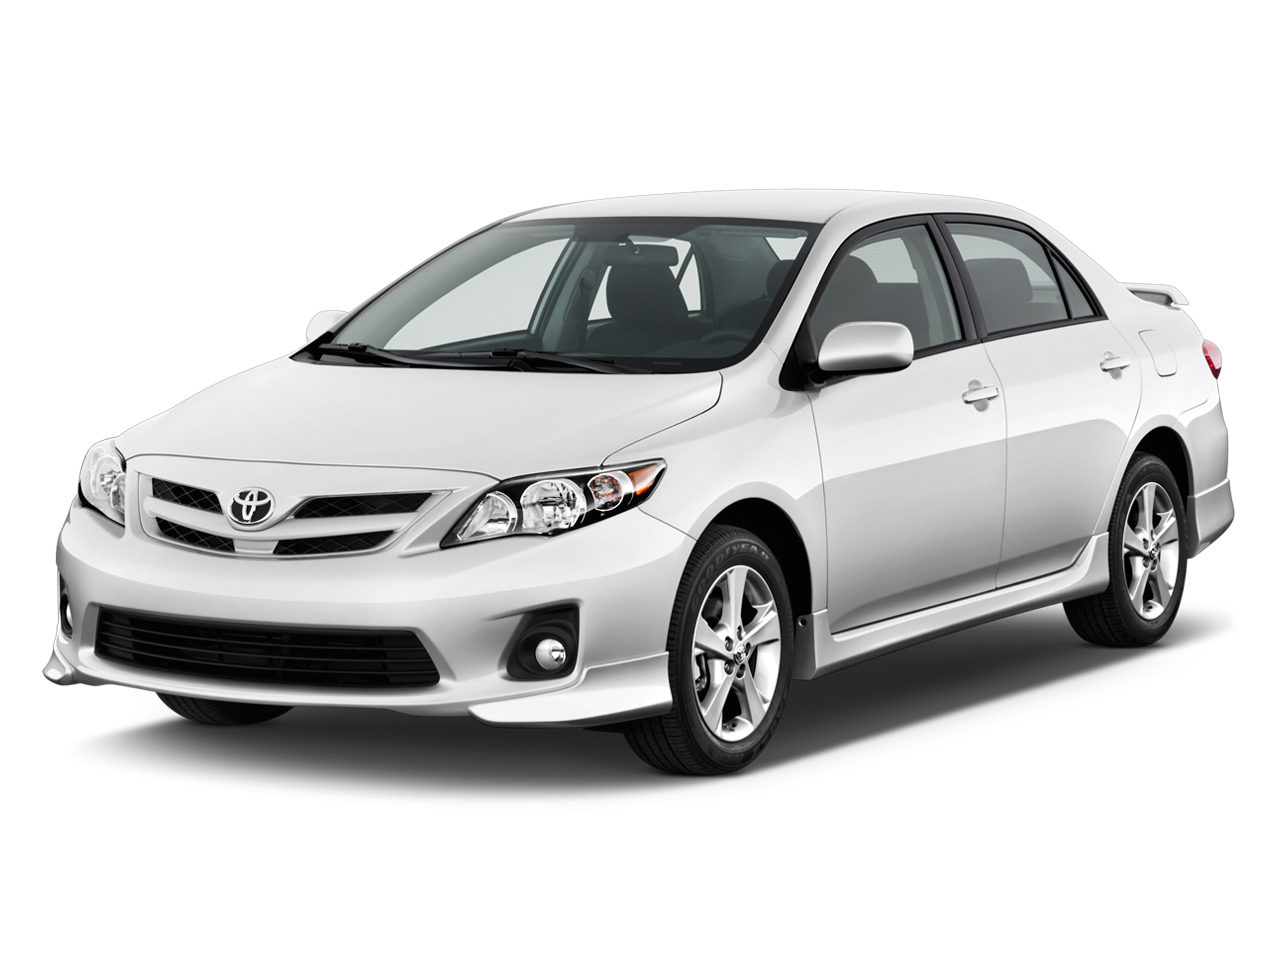 Infiniti Kansas City >> 2012 Toyota Corolla Review, Ratings, Specs, Prices, and ...